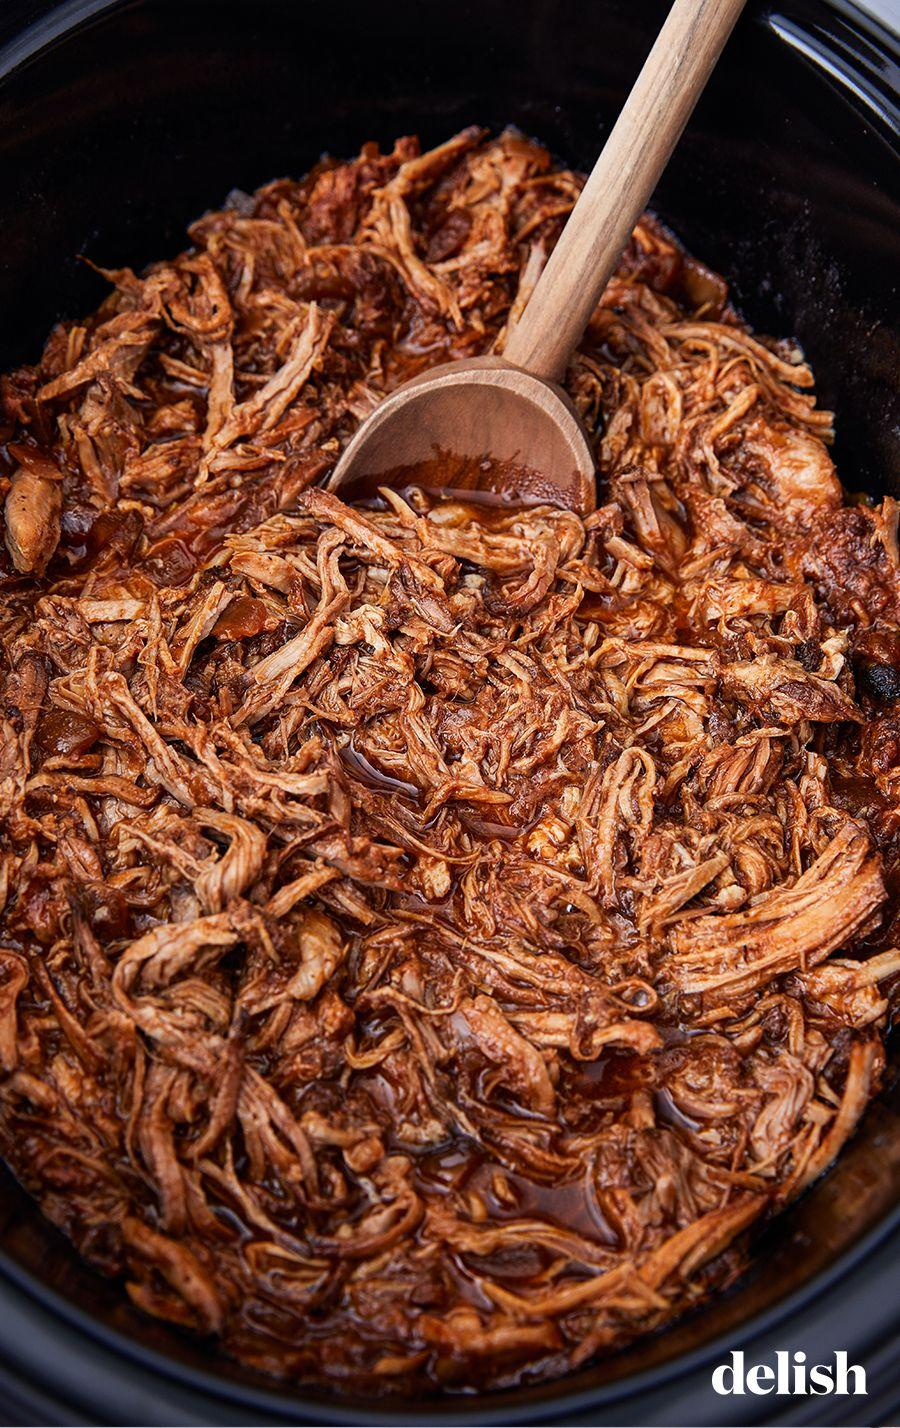 """<p>Fall-apart tender and totally irresistible.</p><p>Get the recipe from <a href=""""/cooking/recipe-ideas/recipes/a51267/slow-cooker-pulled-pork-recipe/"""" data-ylk=""""slk:Delish"""" class=""""link rapid-noclick-resp"""">Delish</a>.</p>"""